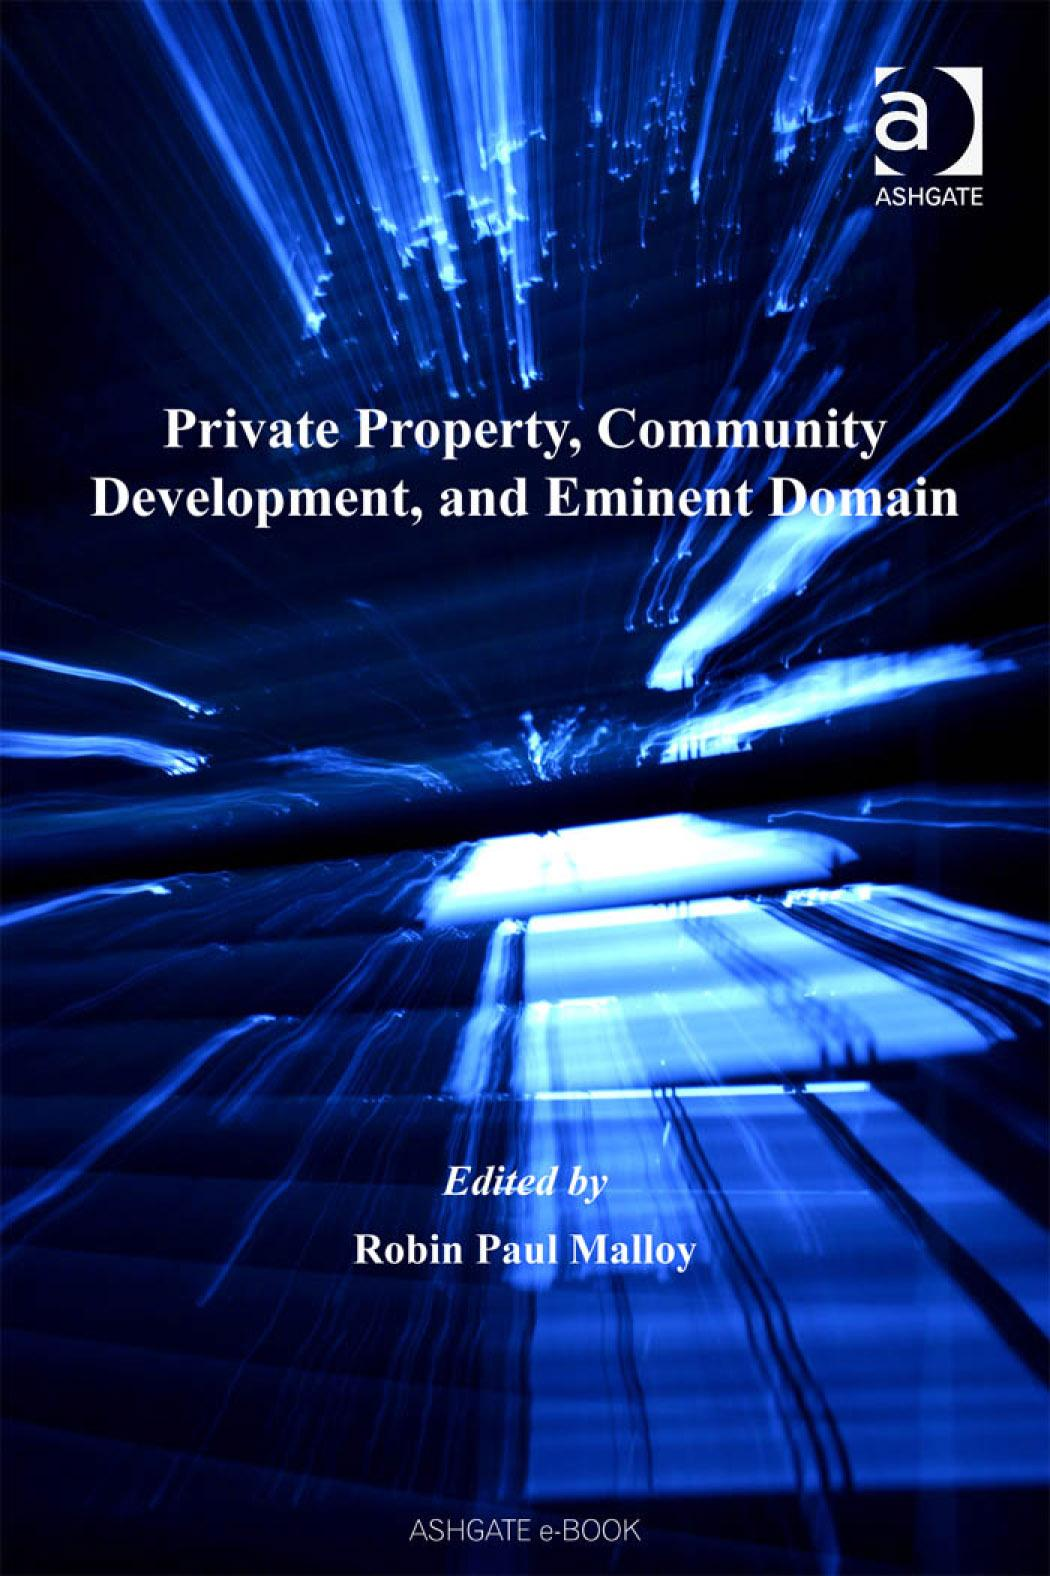 Private Property, Community Development, and Eminent Domain Robin Paul Malloy